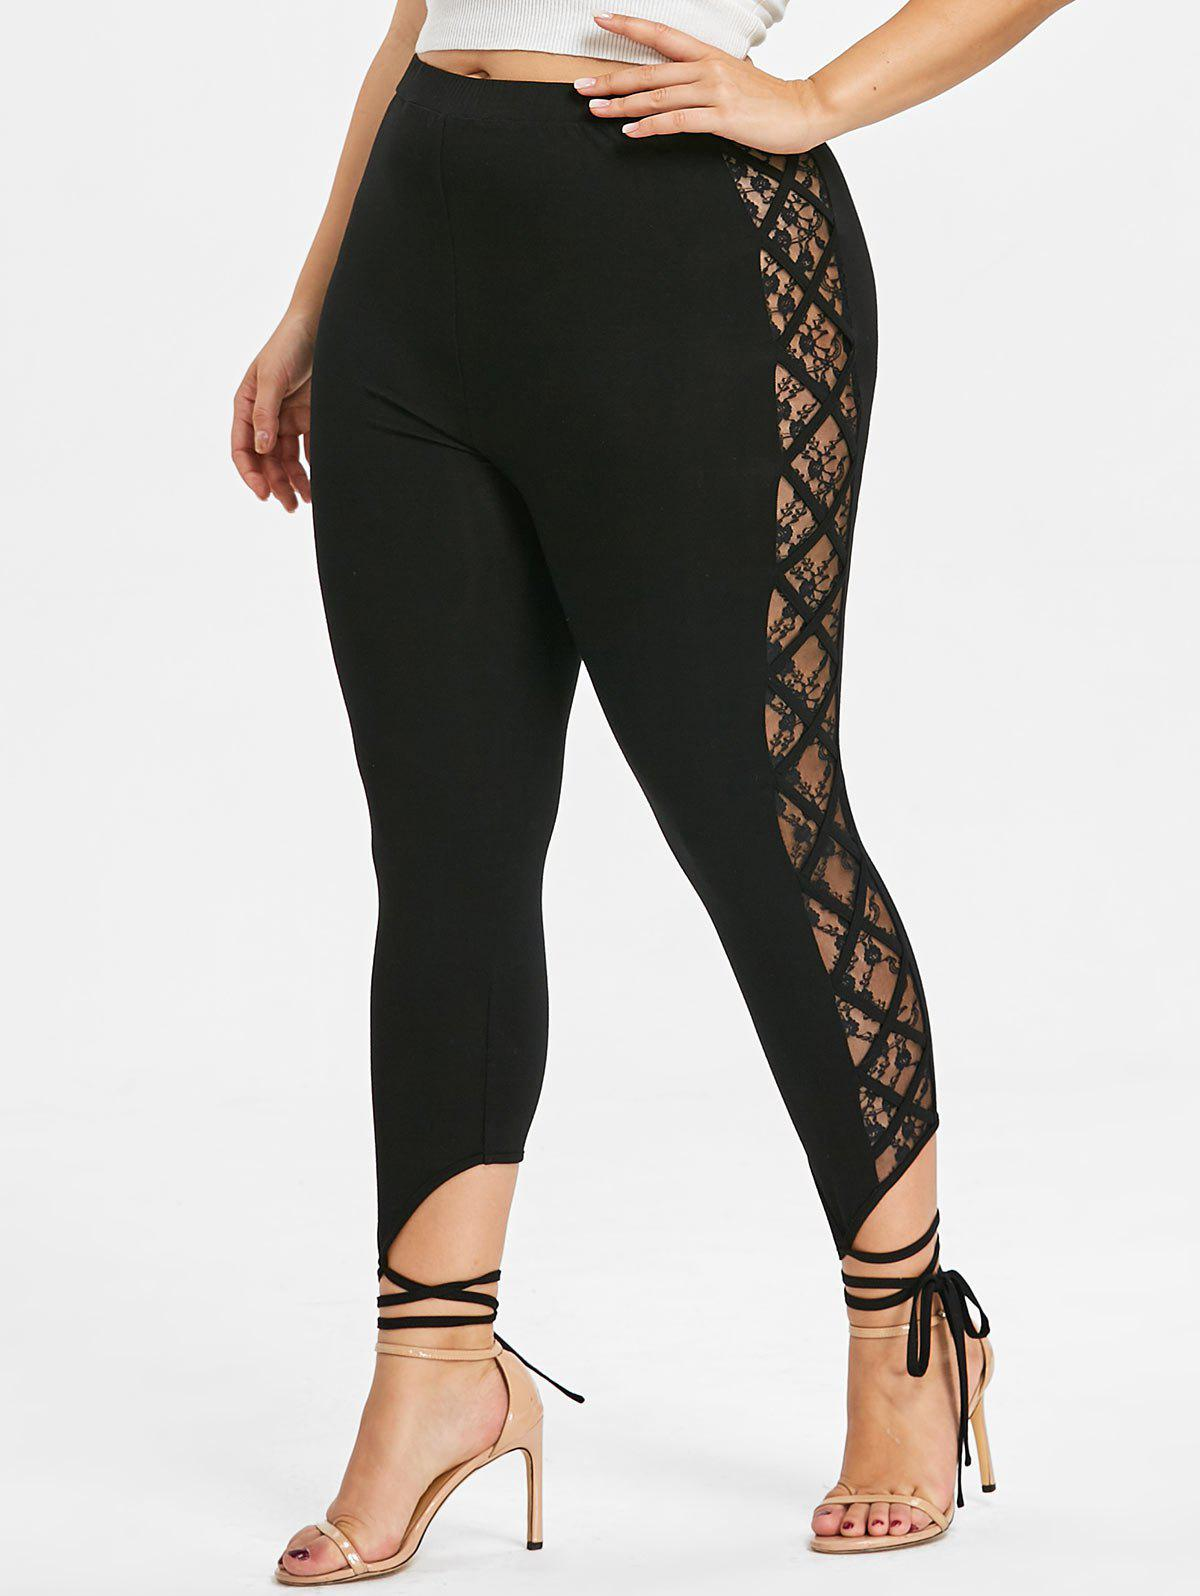 Plus Size Lace Panel Tie Cuff Leggings - BLACK 3XL